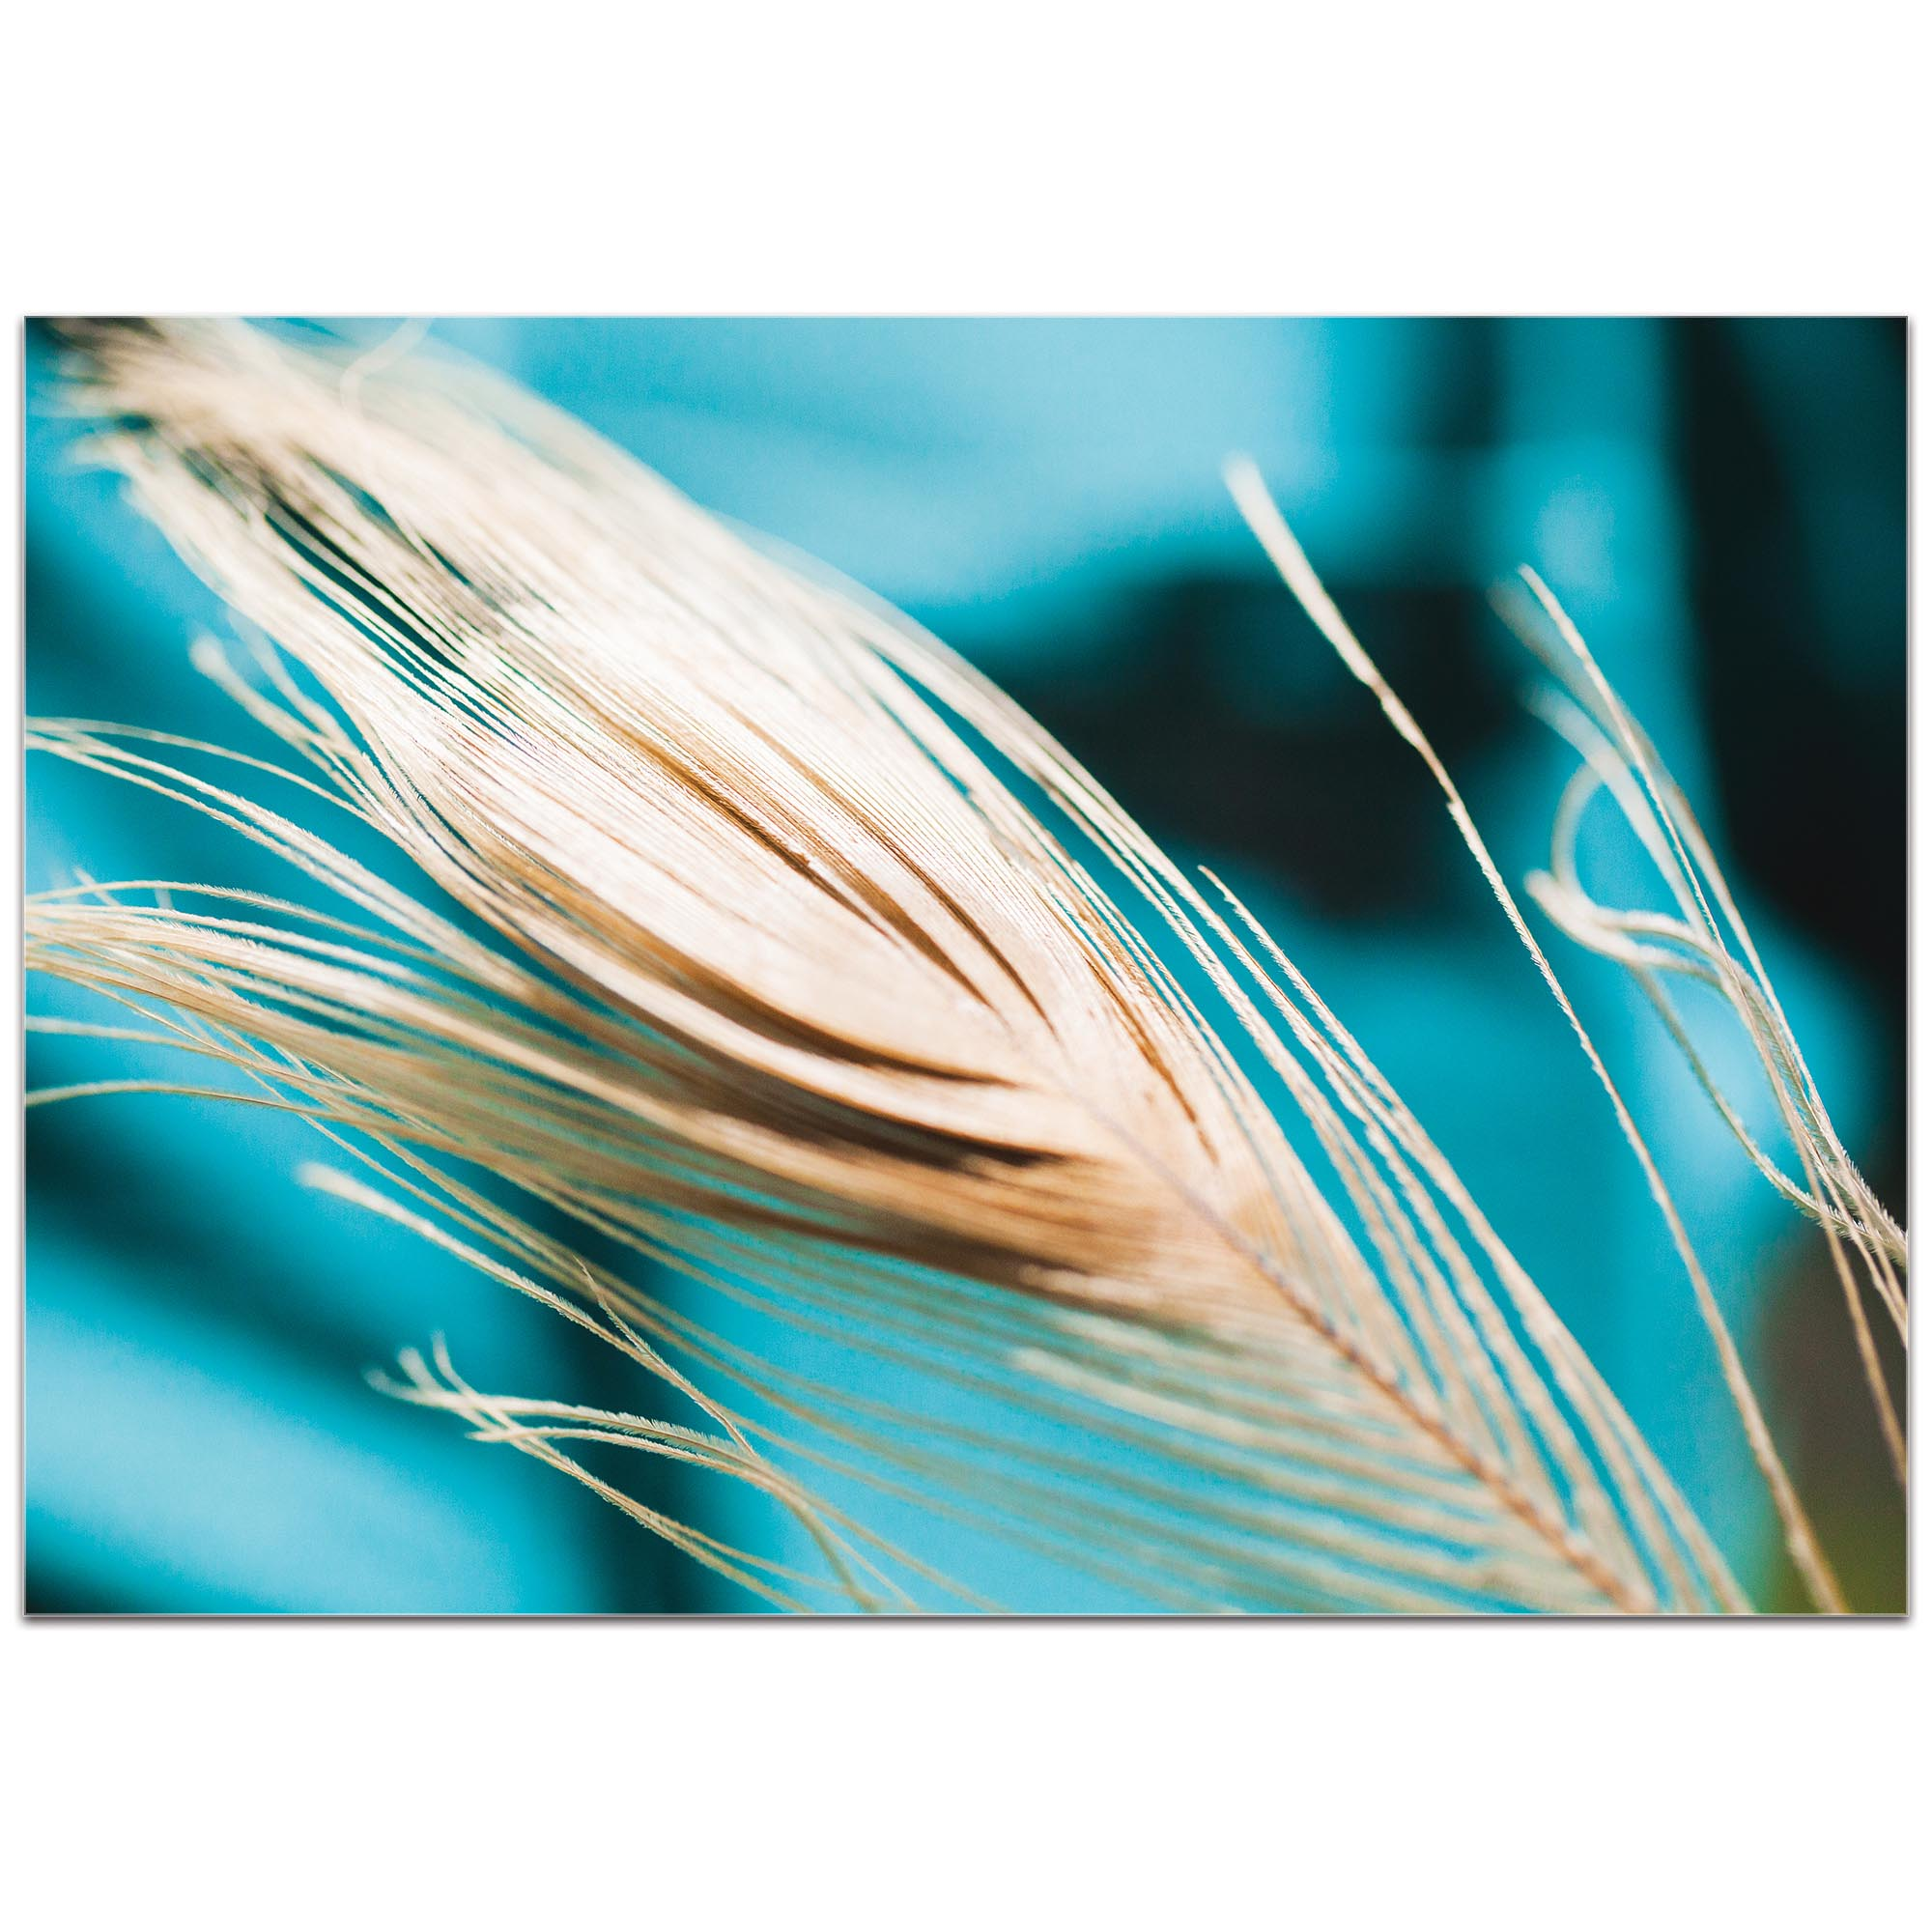 Nature Photography 'Turqoise Feather' - Bird Feathers Art on Metal or Plexiglass - Image 2